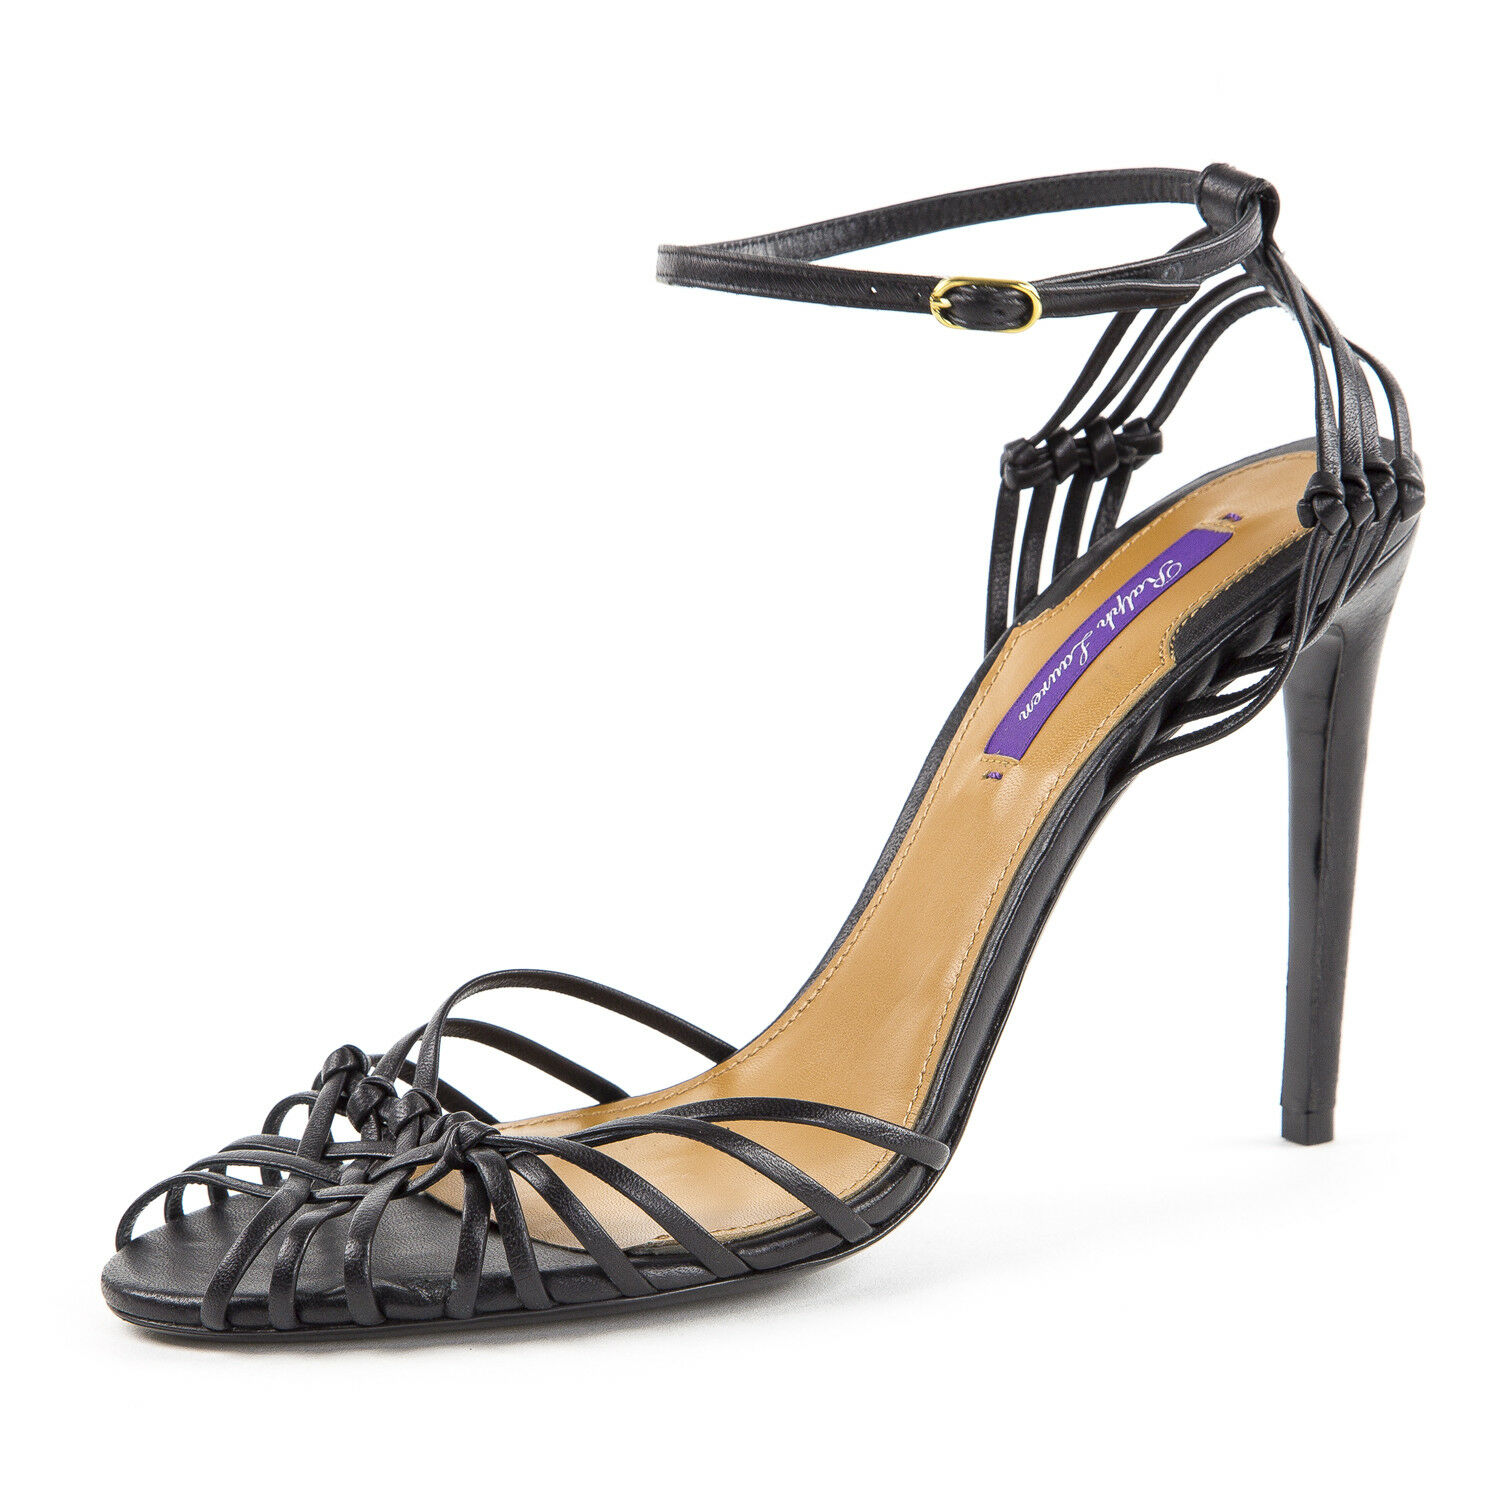 RALPH LAUREN Purple Label Women's Black Ankle Strap Leather Sandals Sz 10.5  595